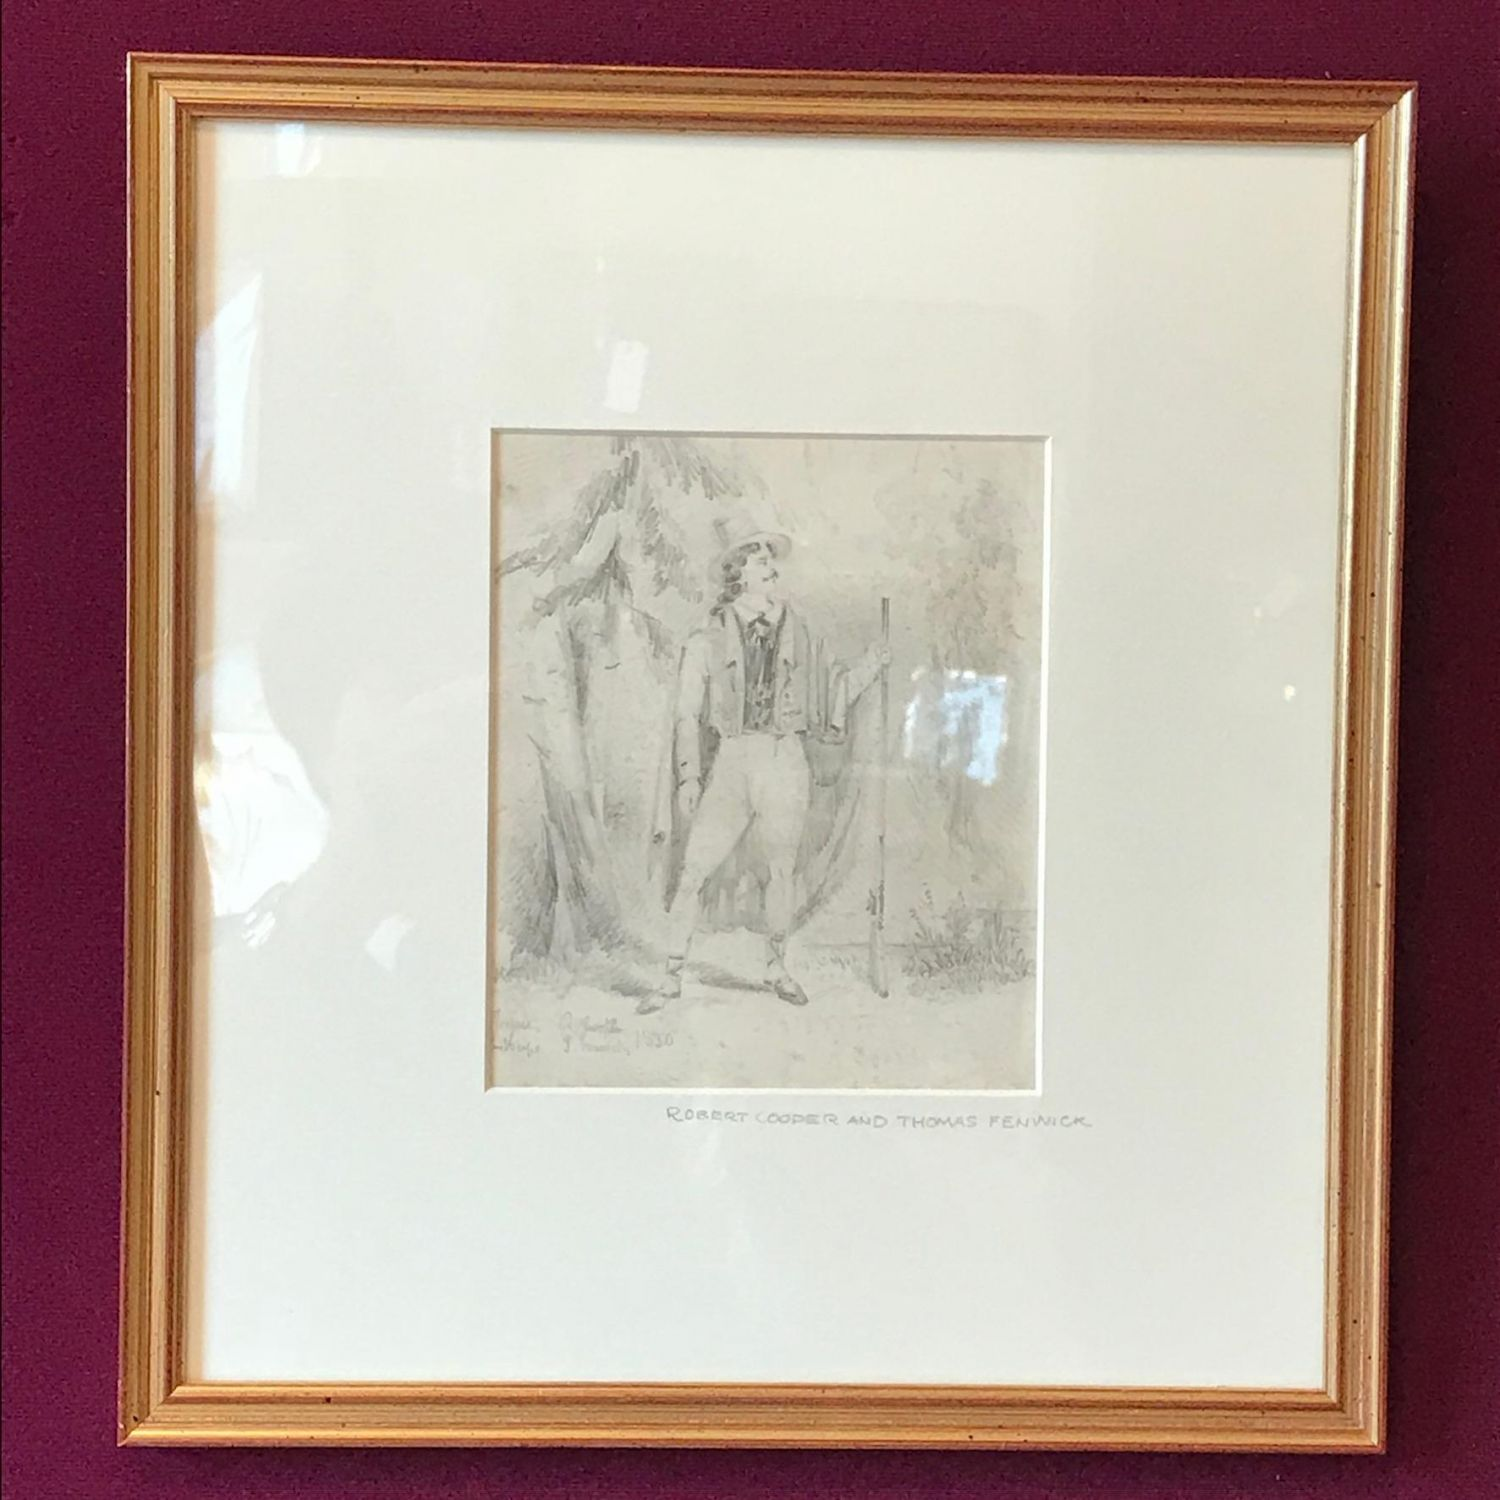 19th century pencil drawing of a gentleman